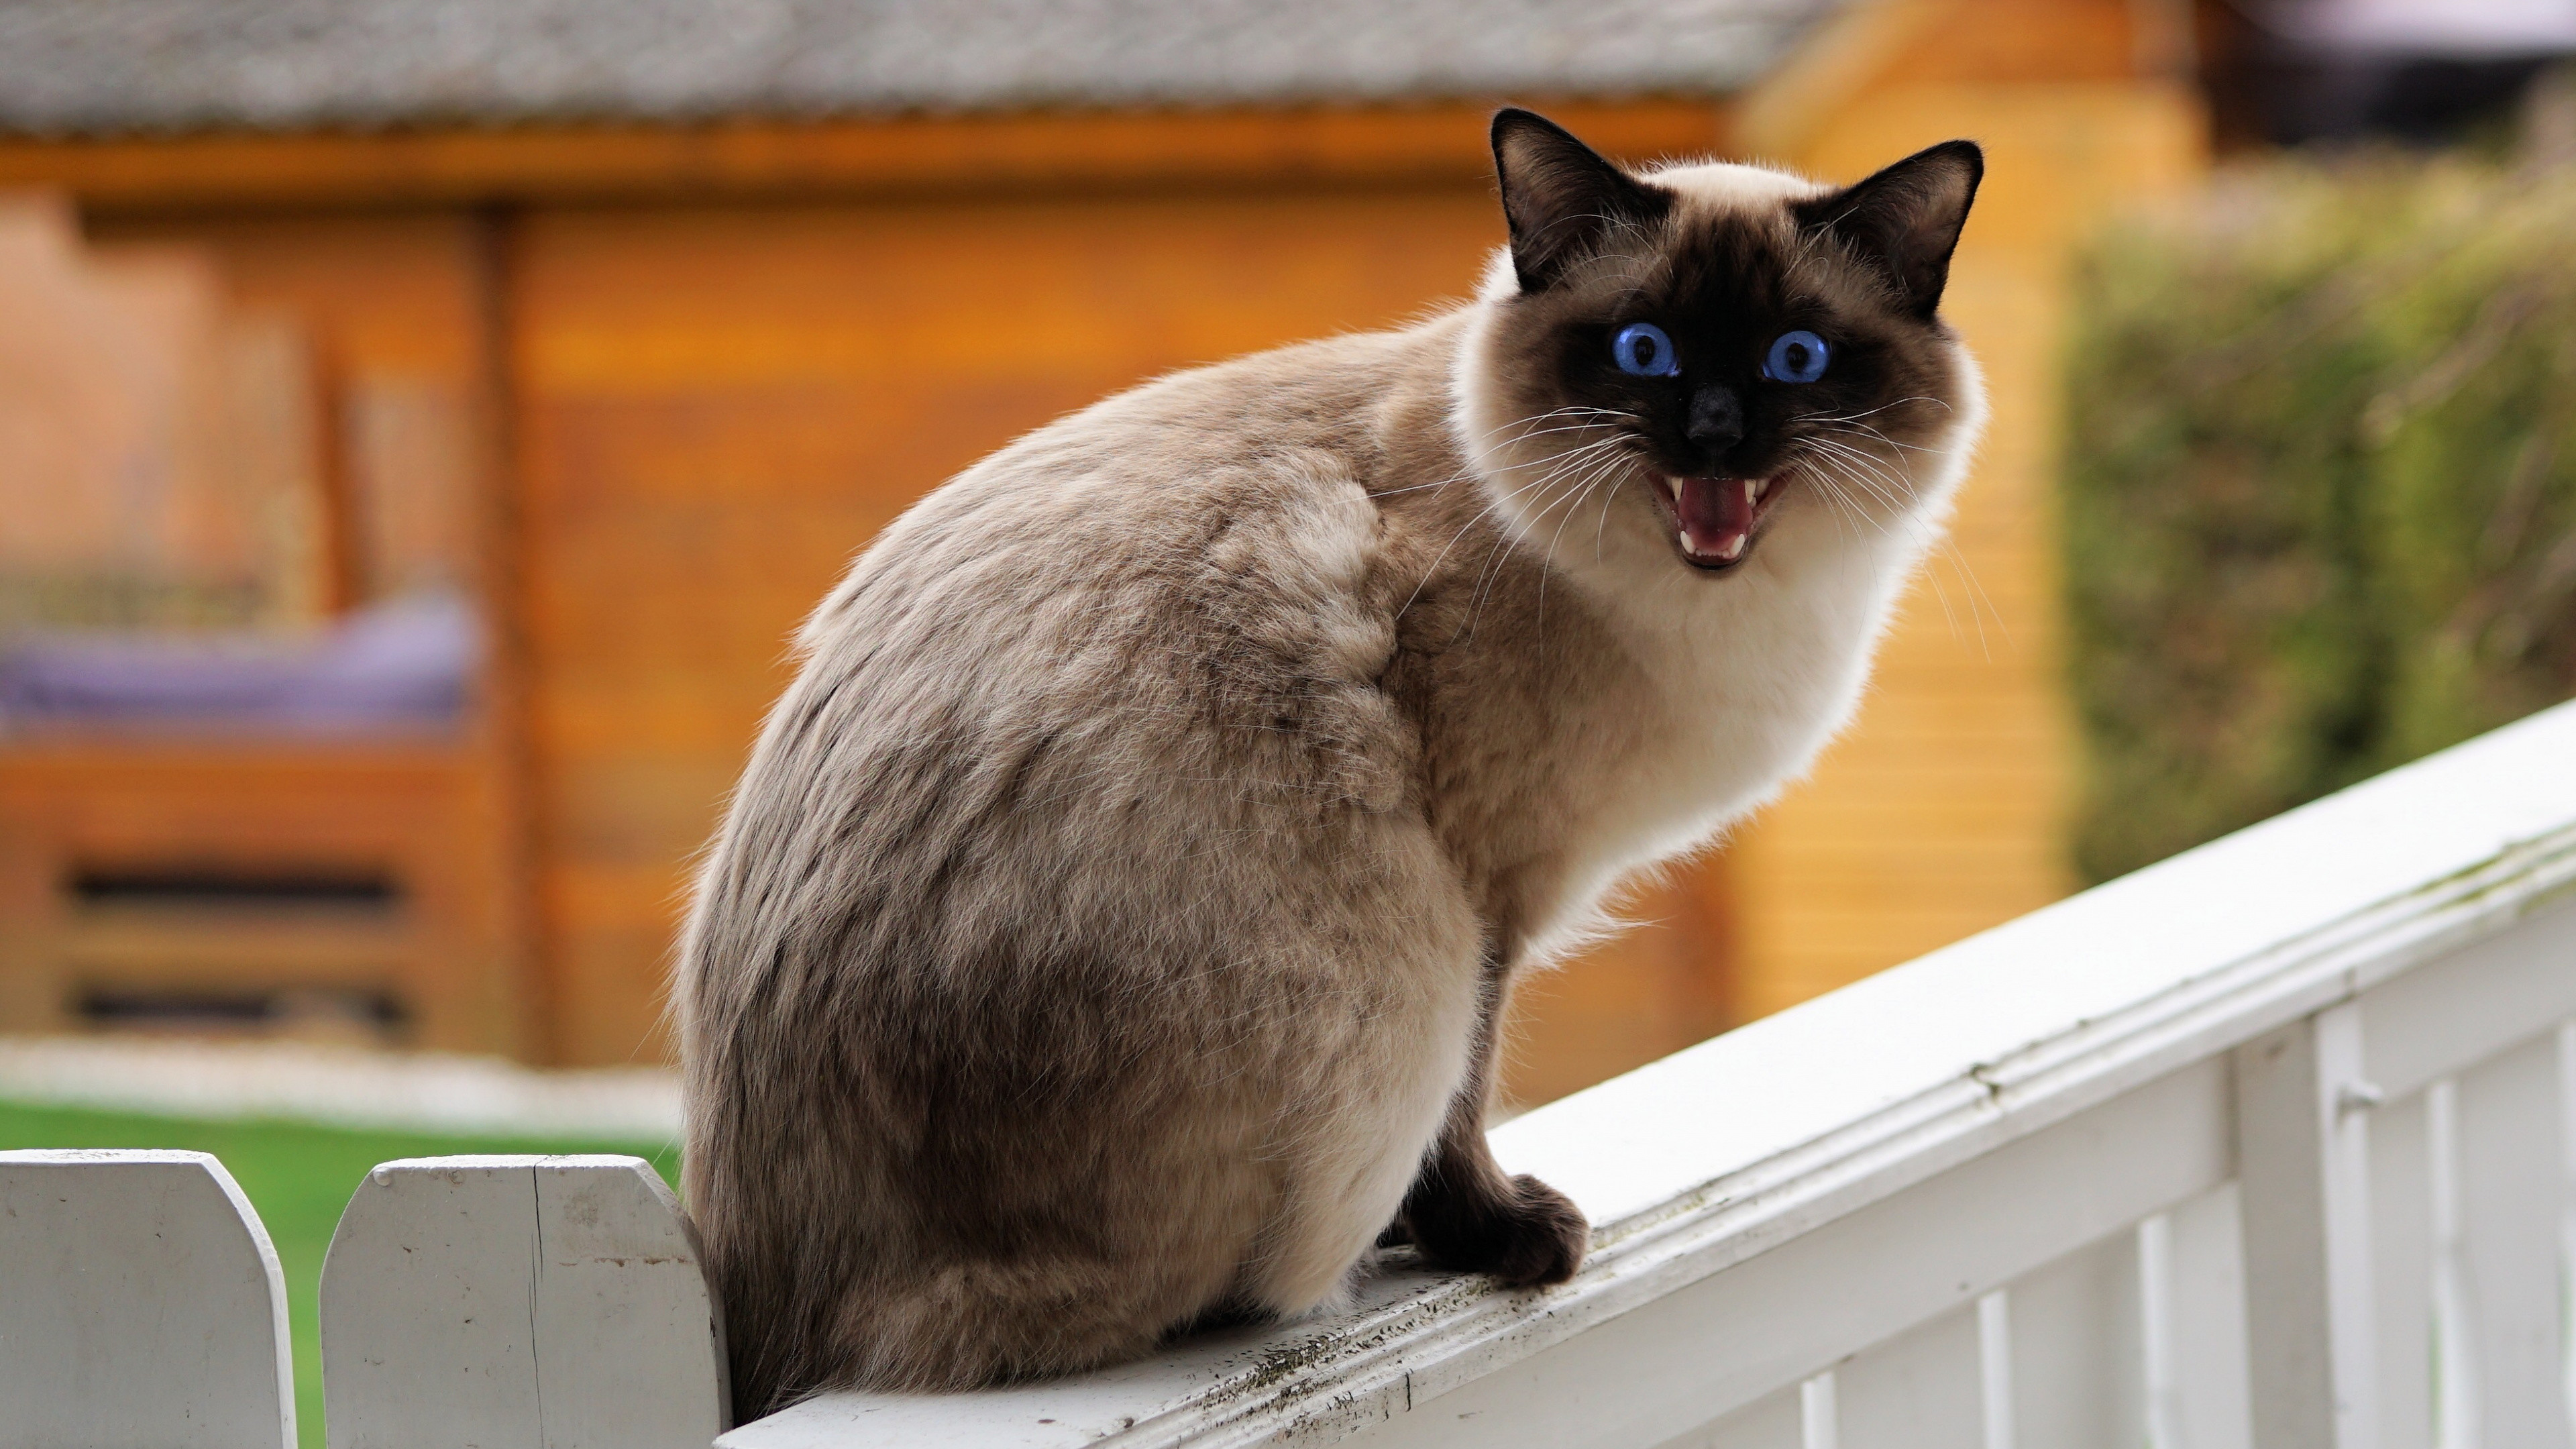 3840x2160  wallpaper Siamese cat, angry pet animal, sitting